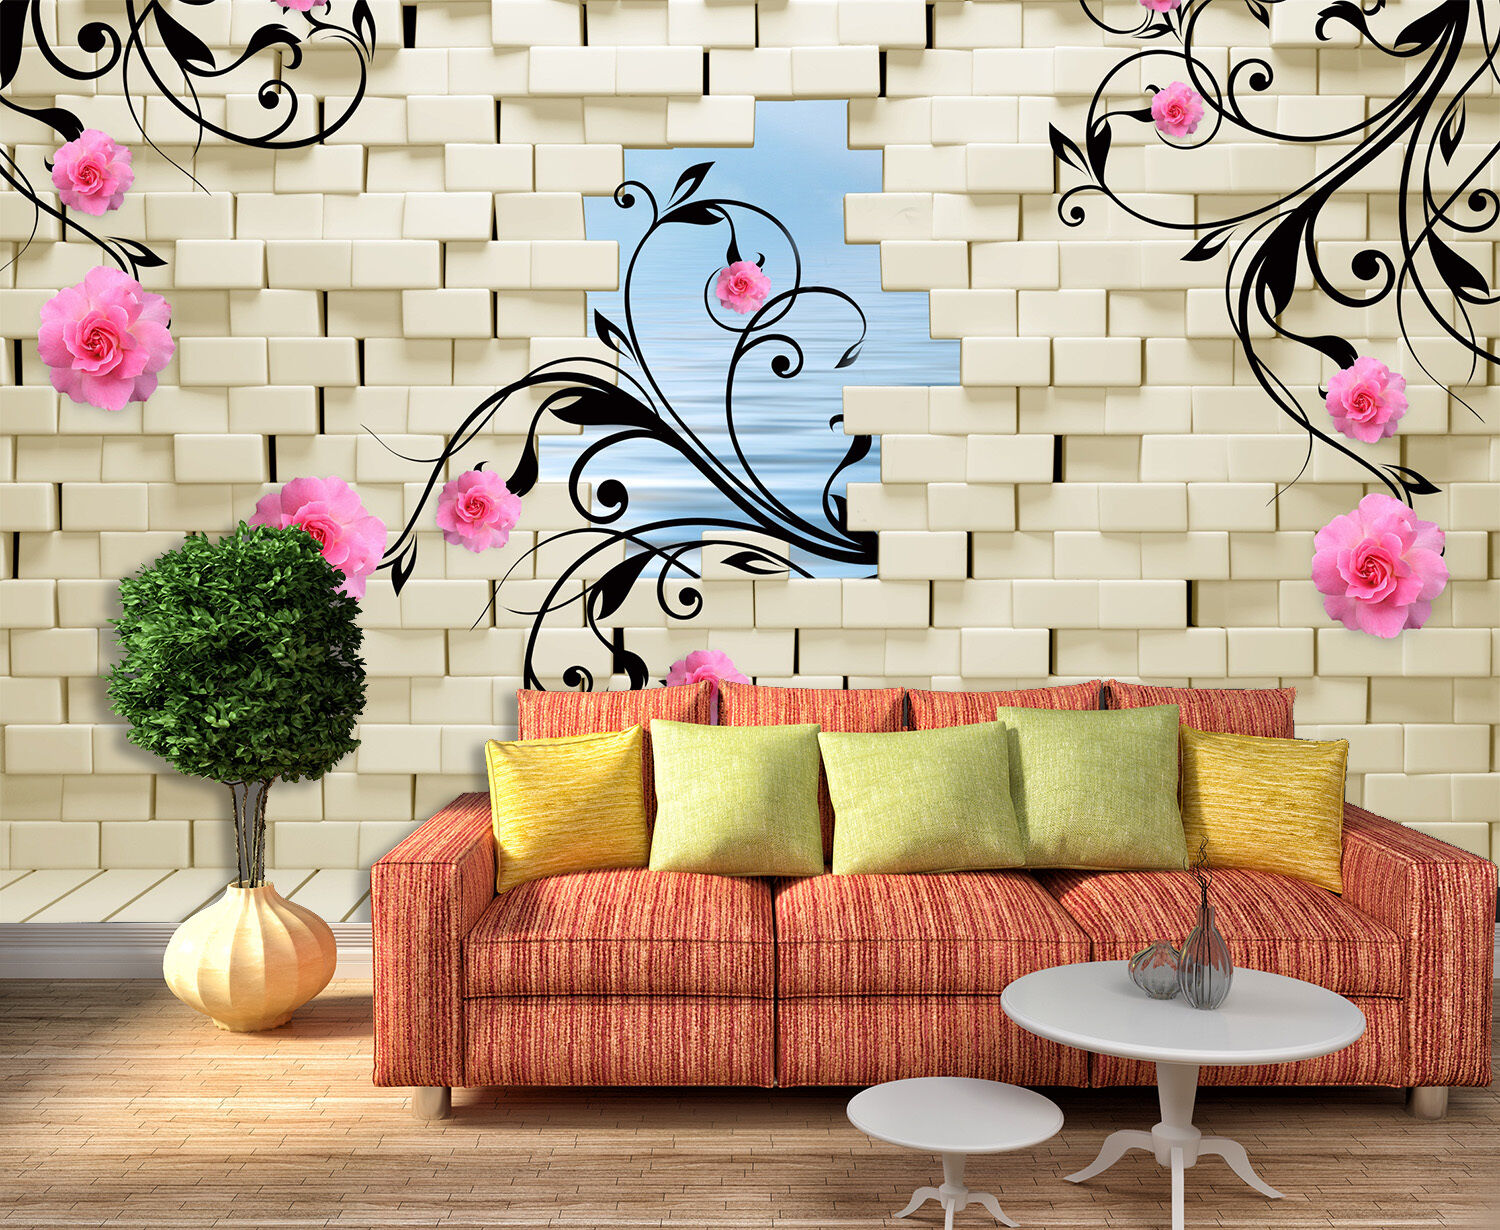 3D Flowers, leaves 456 Wall Paper Print Wall Decal Deco Indoor Wall Murals